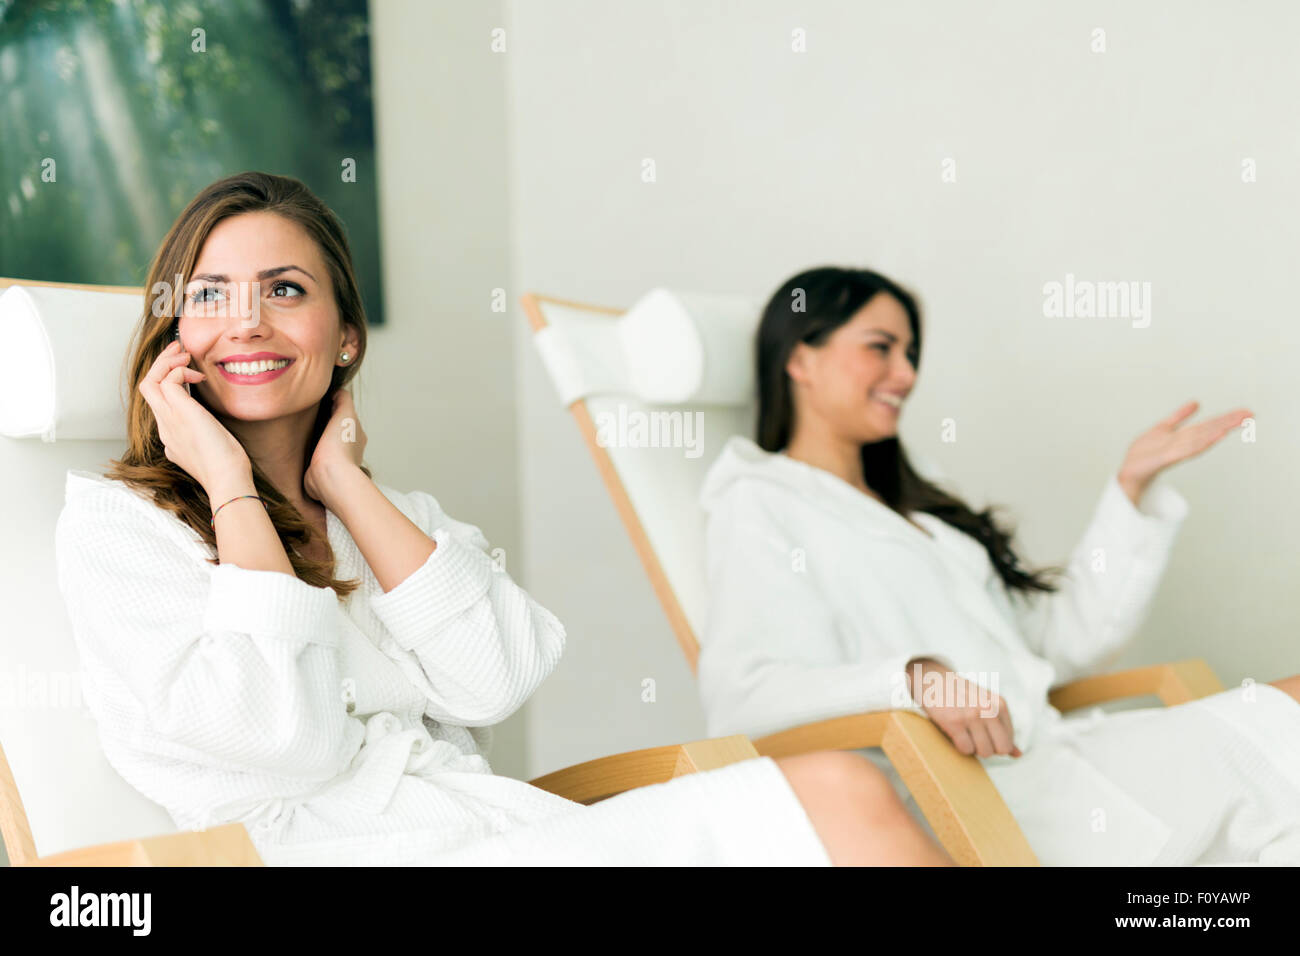 Young and beautiful women relaxing in a spa wearing robes and talking on the phone - Stock Image